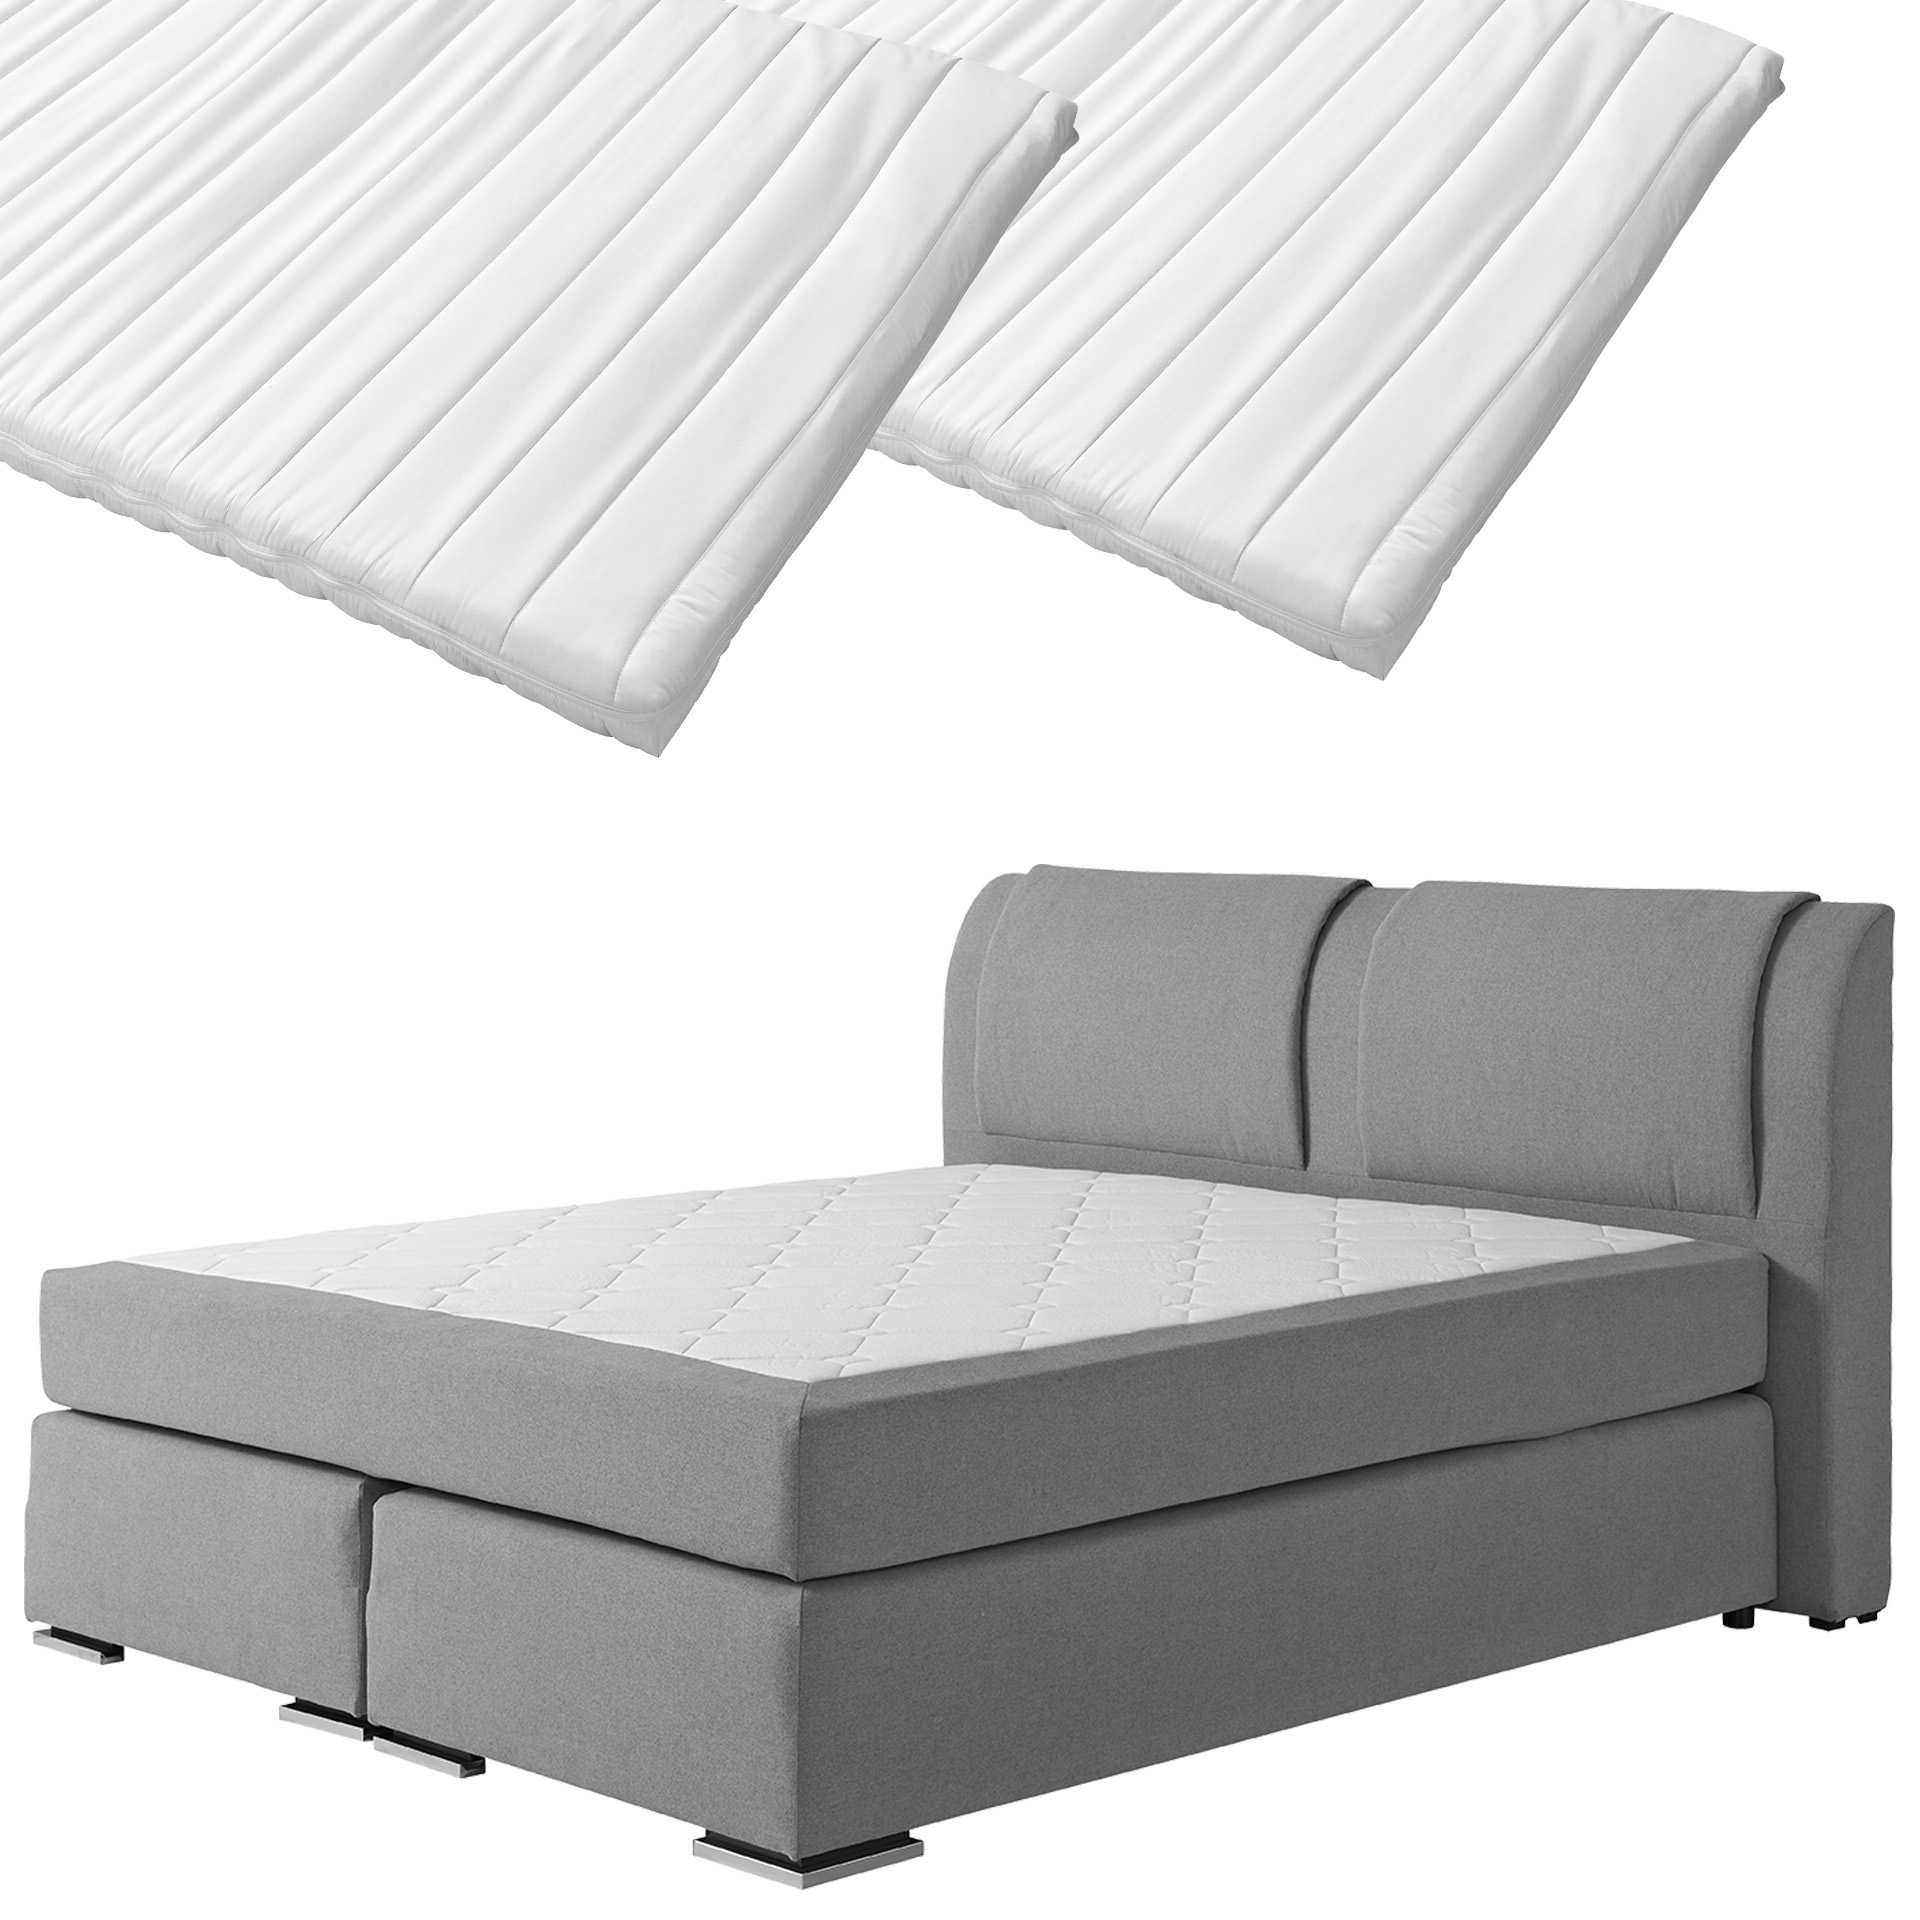 Boxspringbett-Set SUPERDREAM Himmerland/ErgoMAXX® Komfortschaum-Topper Stockholm (180x200, 2 Topper)